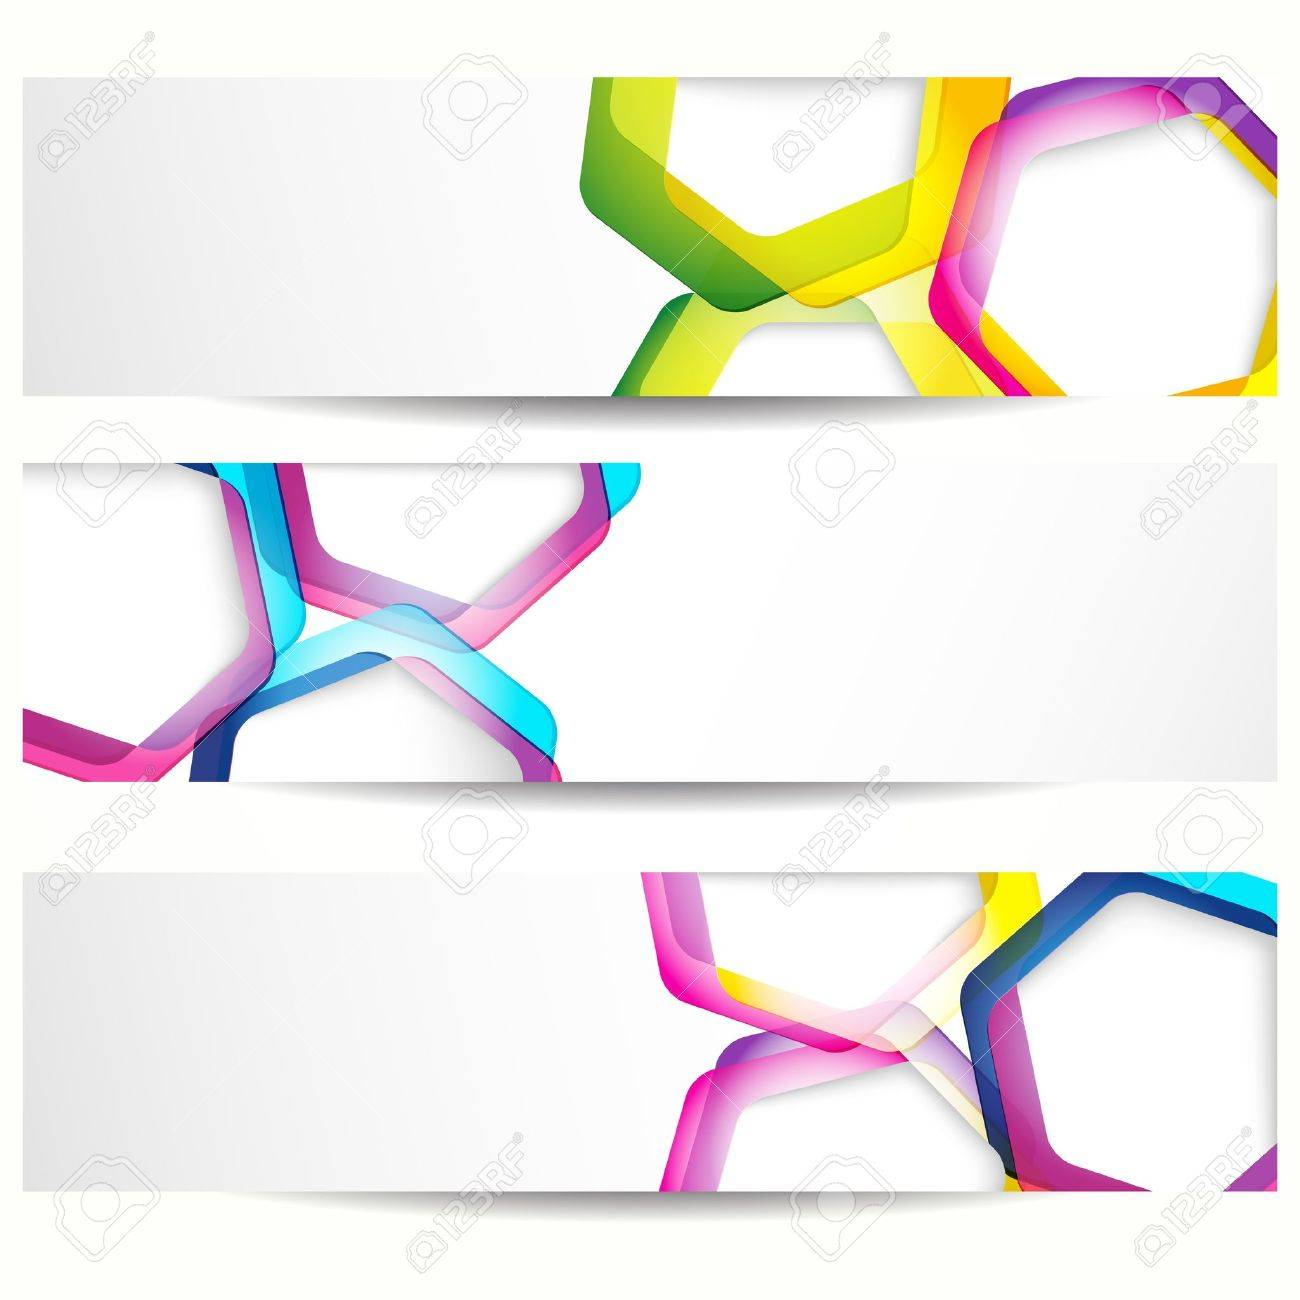 Abstract banner with forms of empty frames for your web design. Stock Vector - 10458651